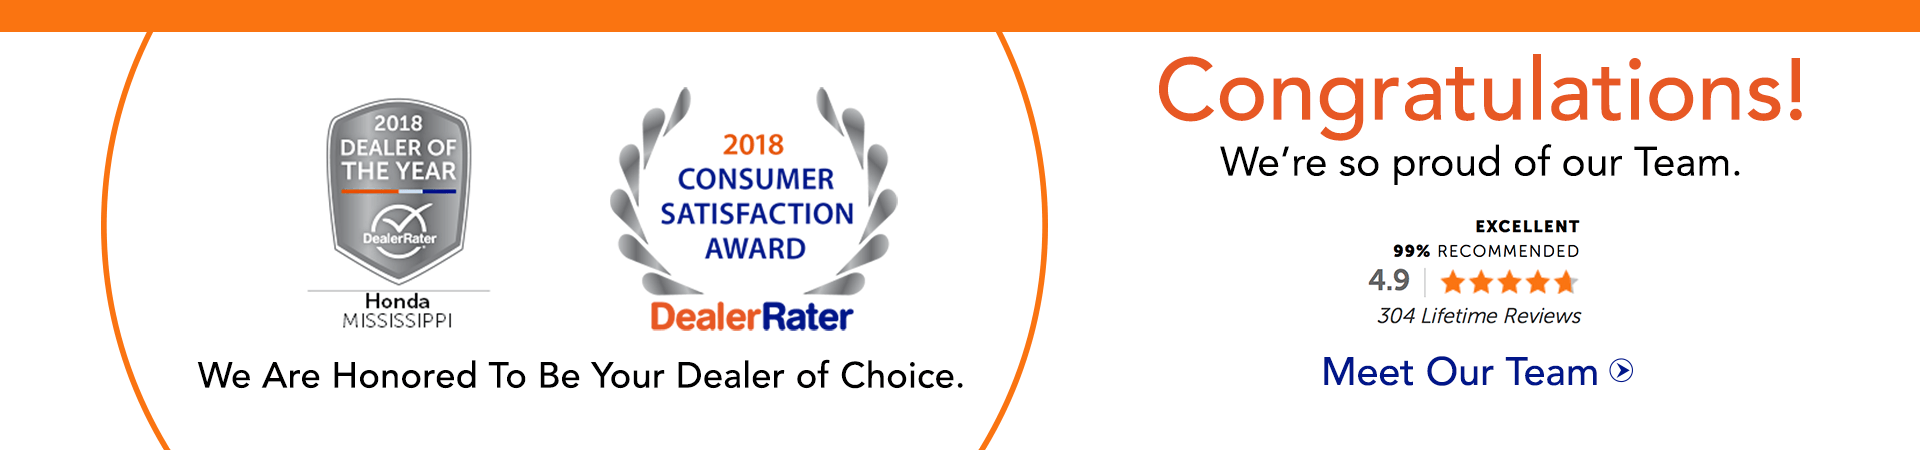 DealerRater Consumer Satisfaction Award 2018